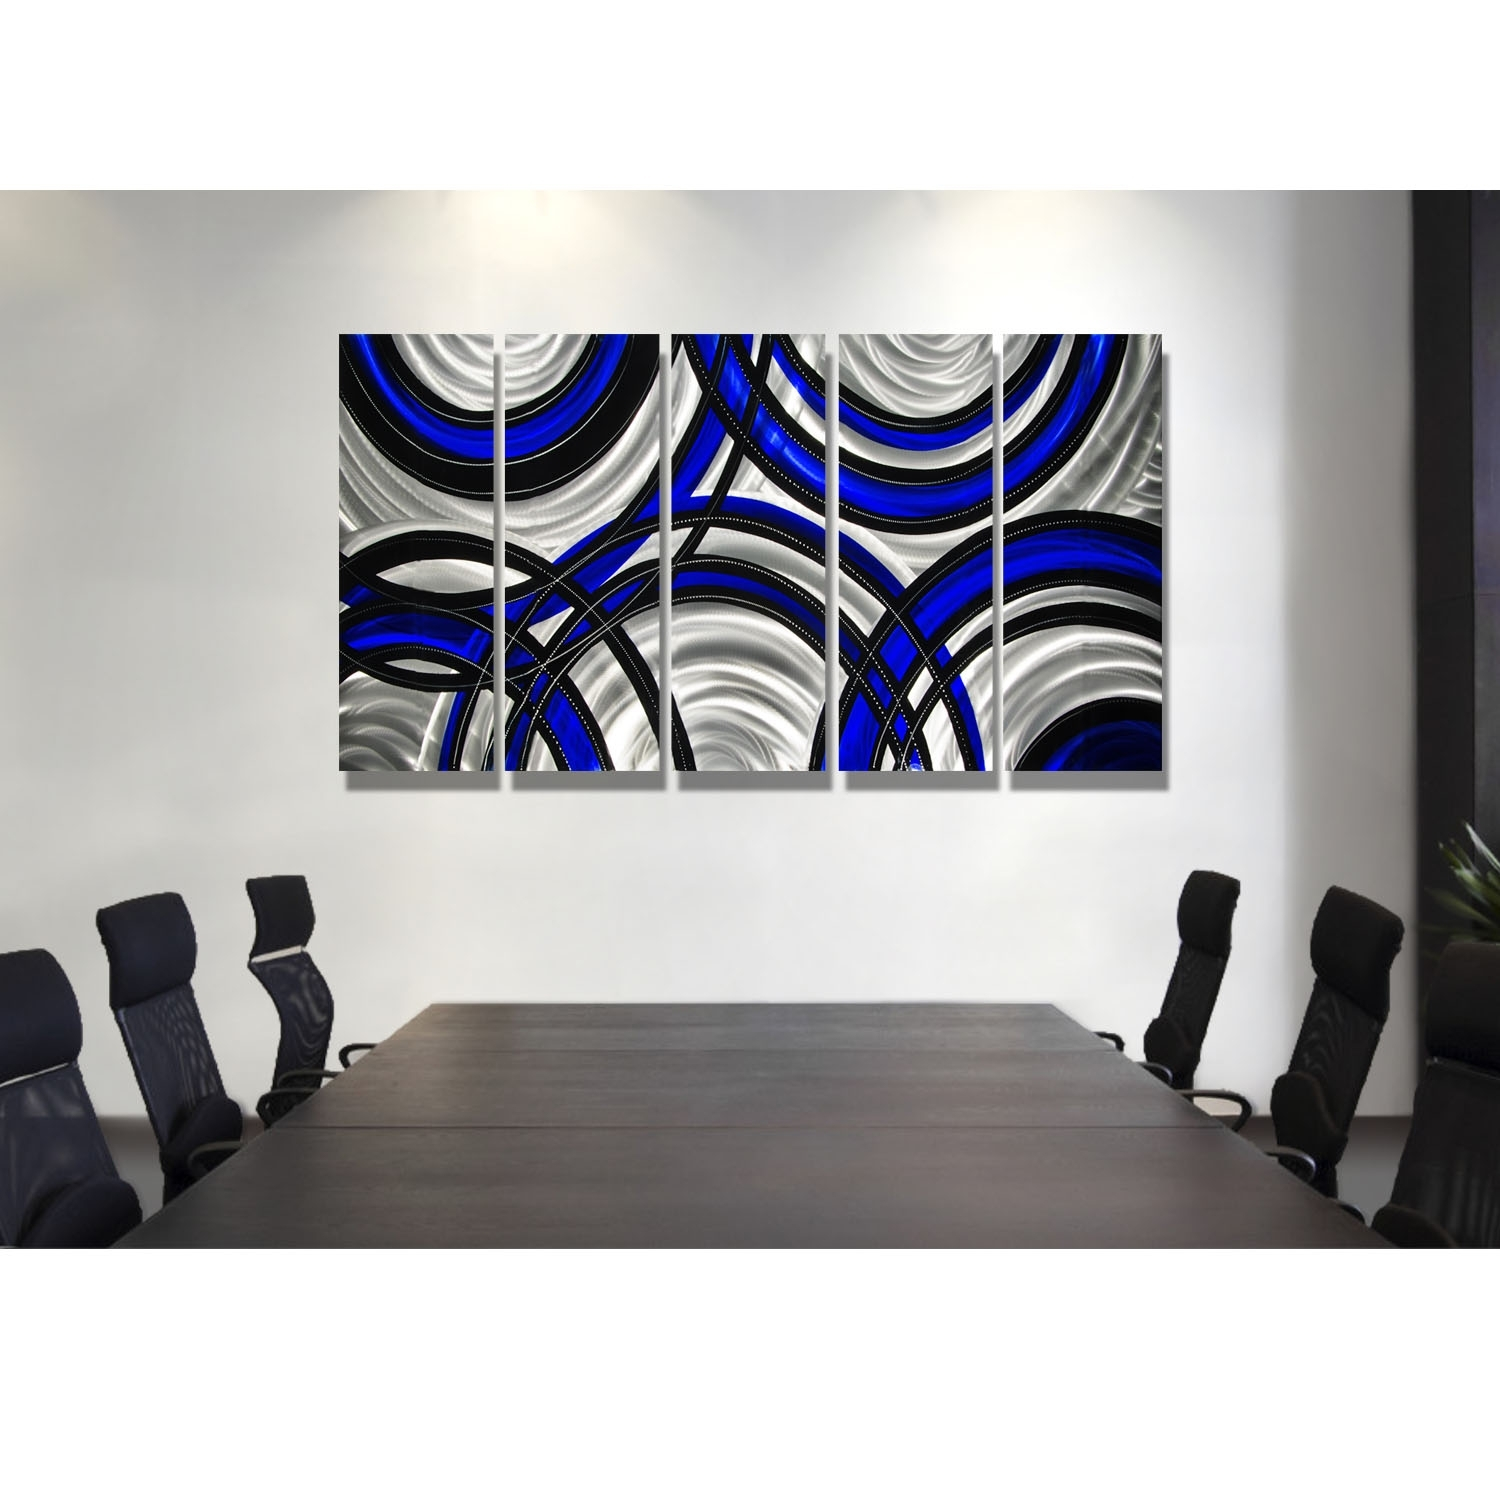 Blue Synergy - Blue, Black And Silver Metal Wall Art - 5 Panel Wall intended for Black Wall Art (Image 7 of 20)